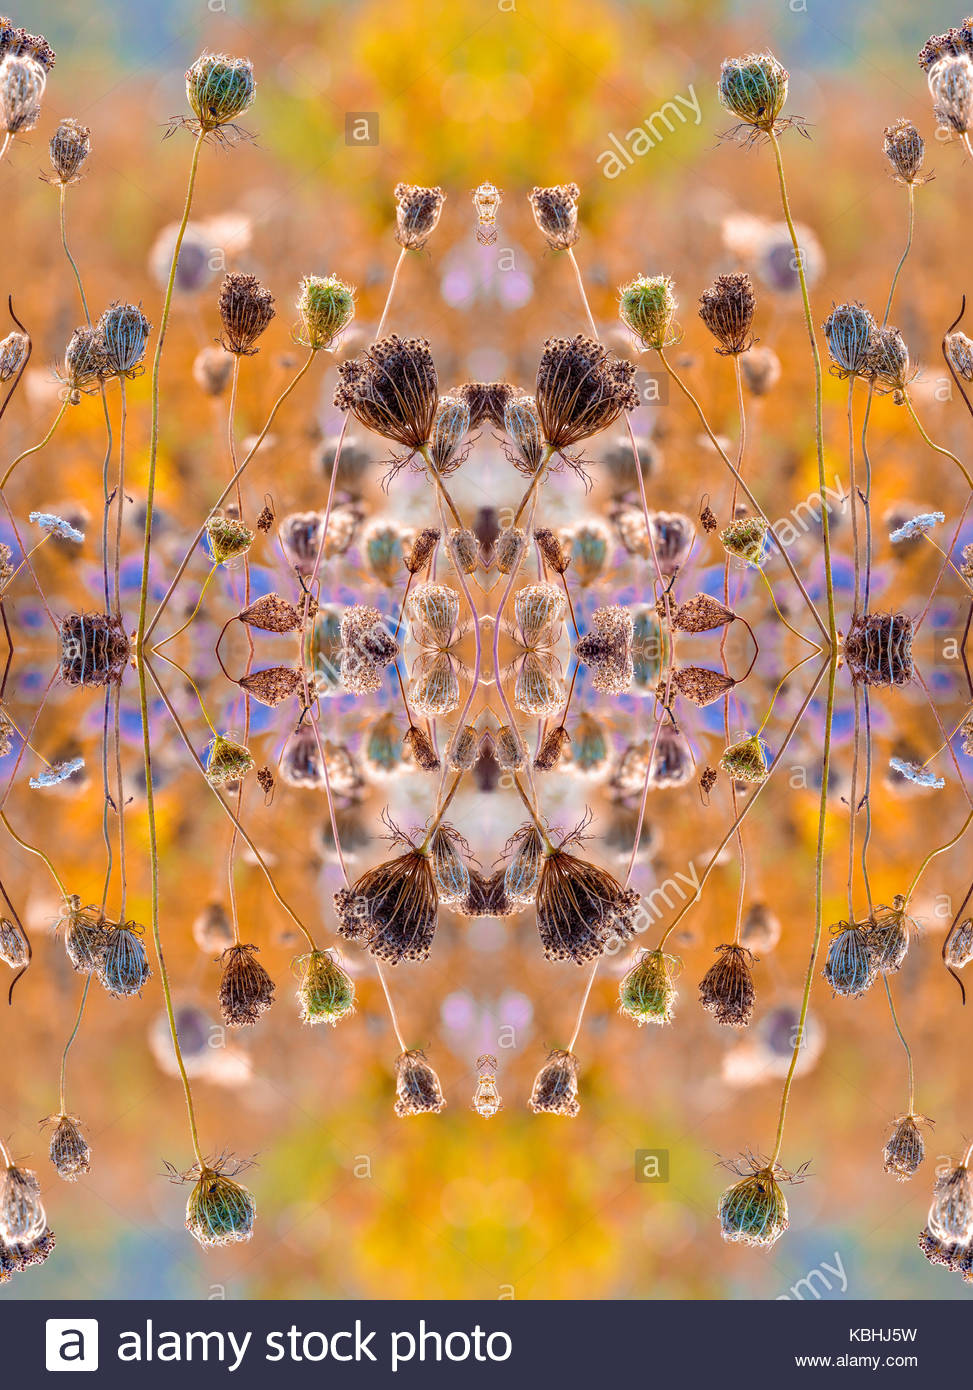 Kaleidoscope pattern of fruit clusters of Queen Anne's Lace Wild Carrot Daucus carota mirror symmetry symmetric - Stock Image